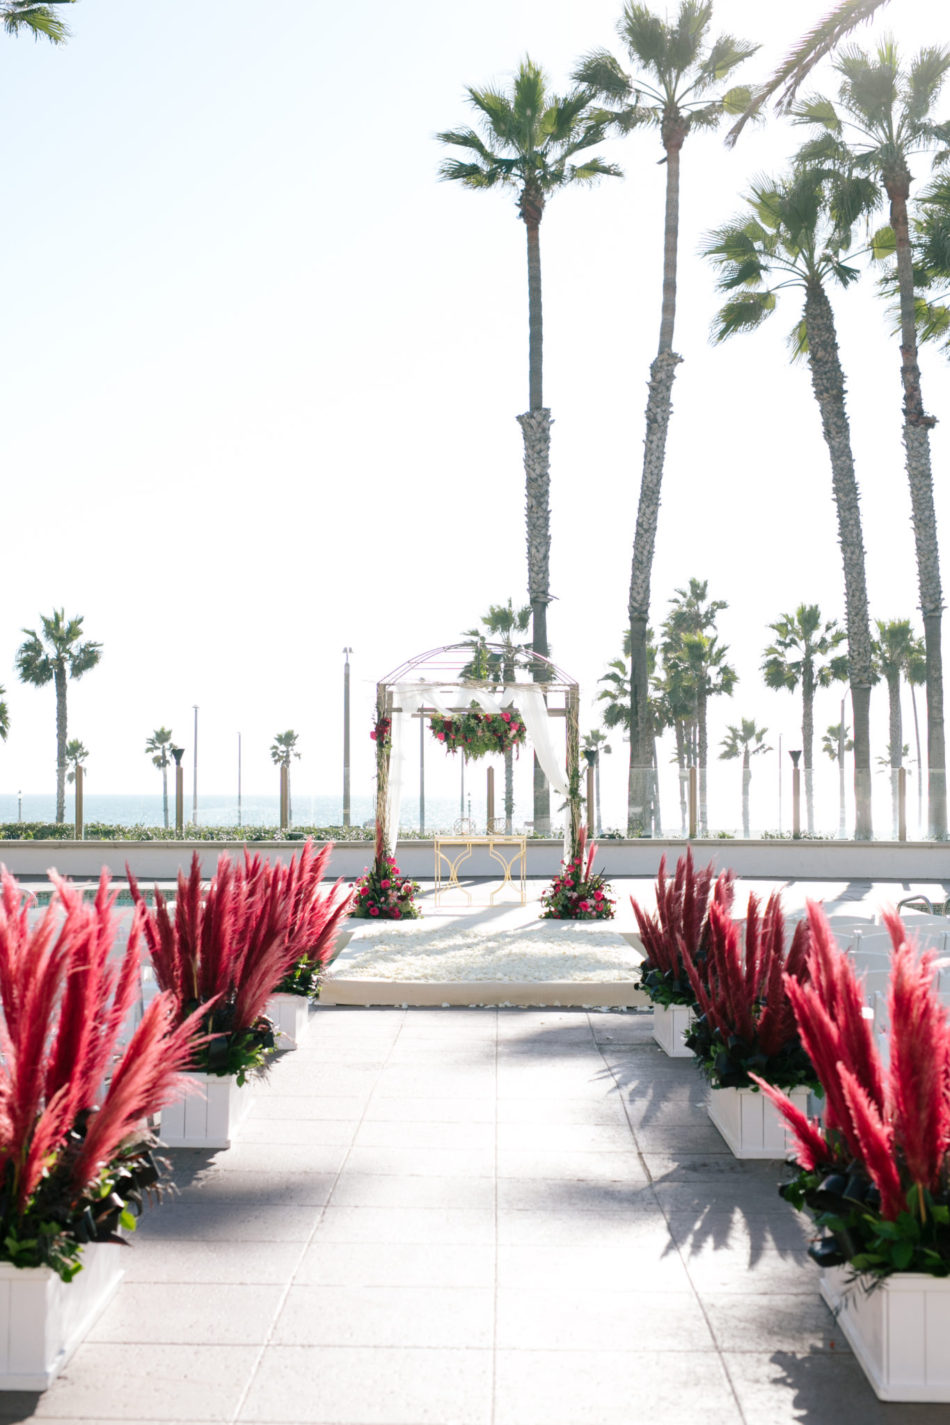 floral design, florist, wedding florist, wedding flowers, orange county weddings, orange county wedding florist, orange county florist, orange county floral design, flowers by cina, red ceremony, red oceanfront wedding, red floral design